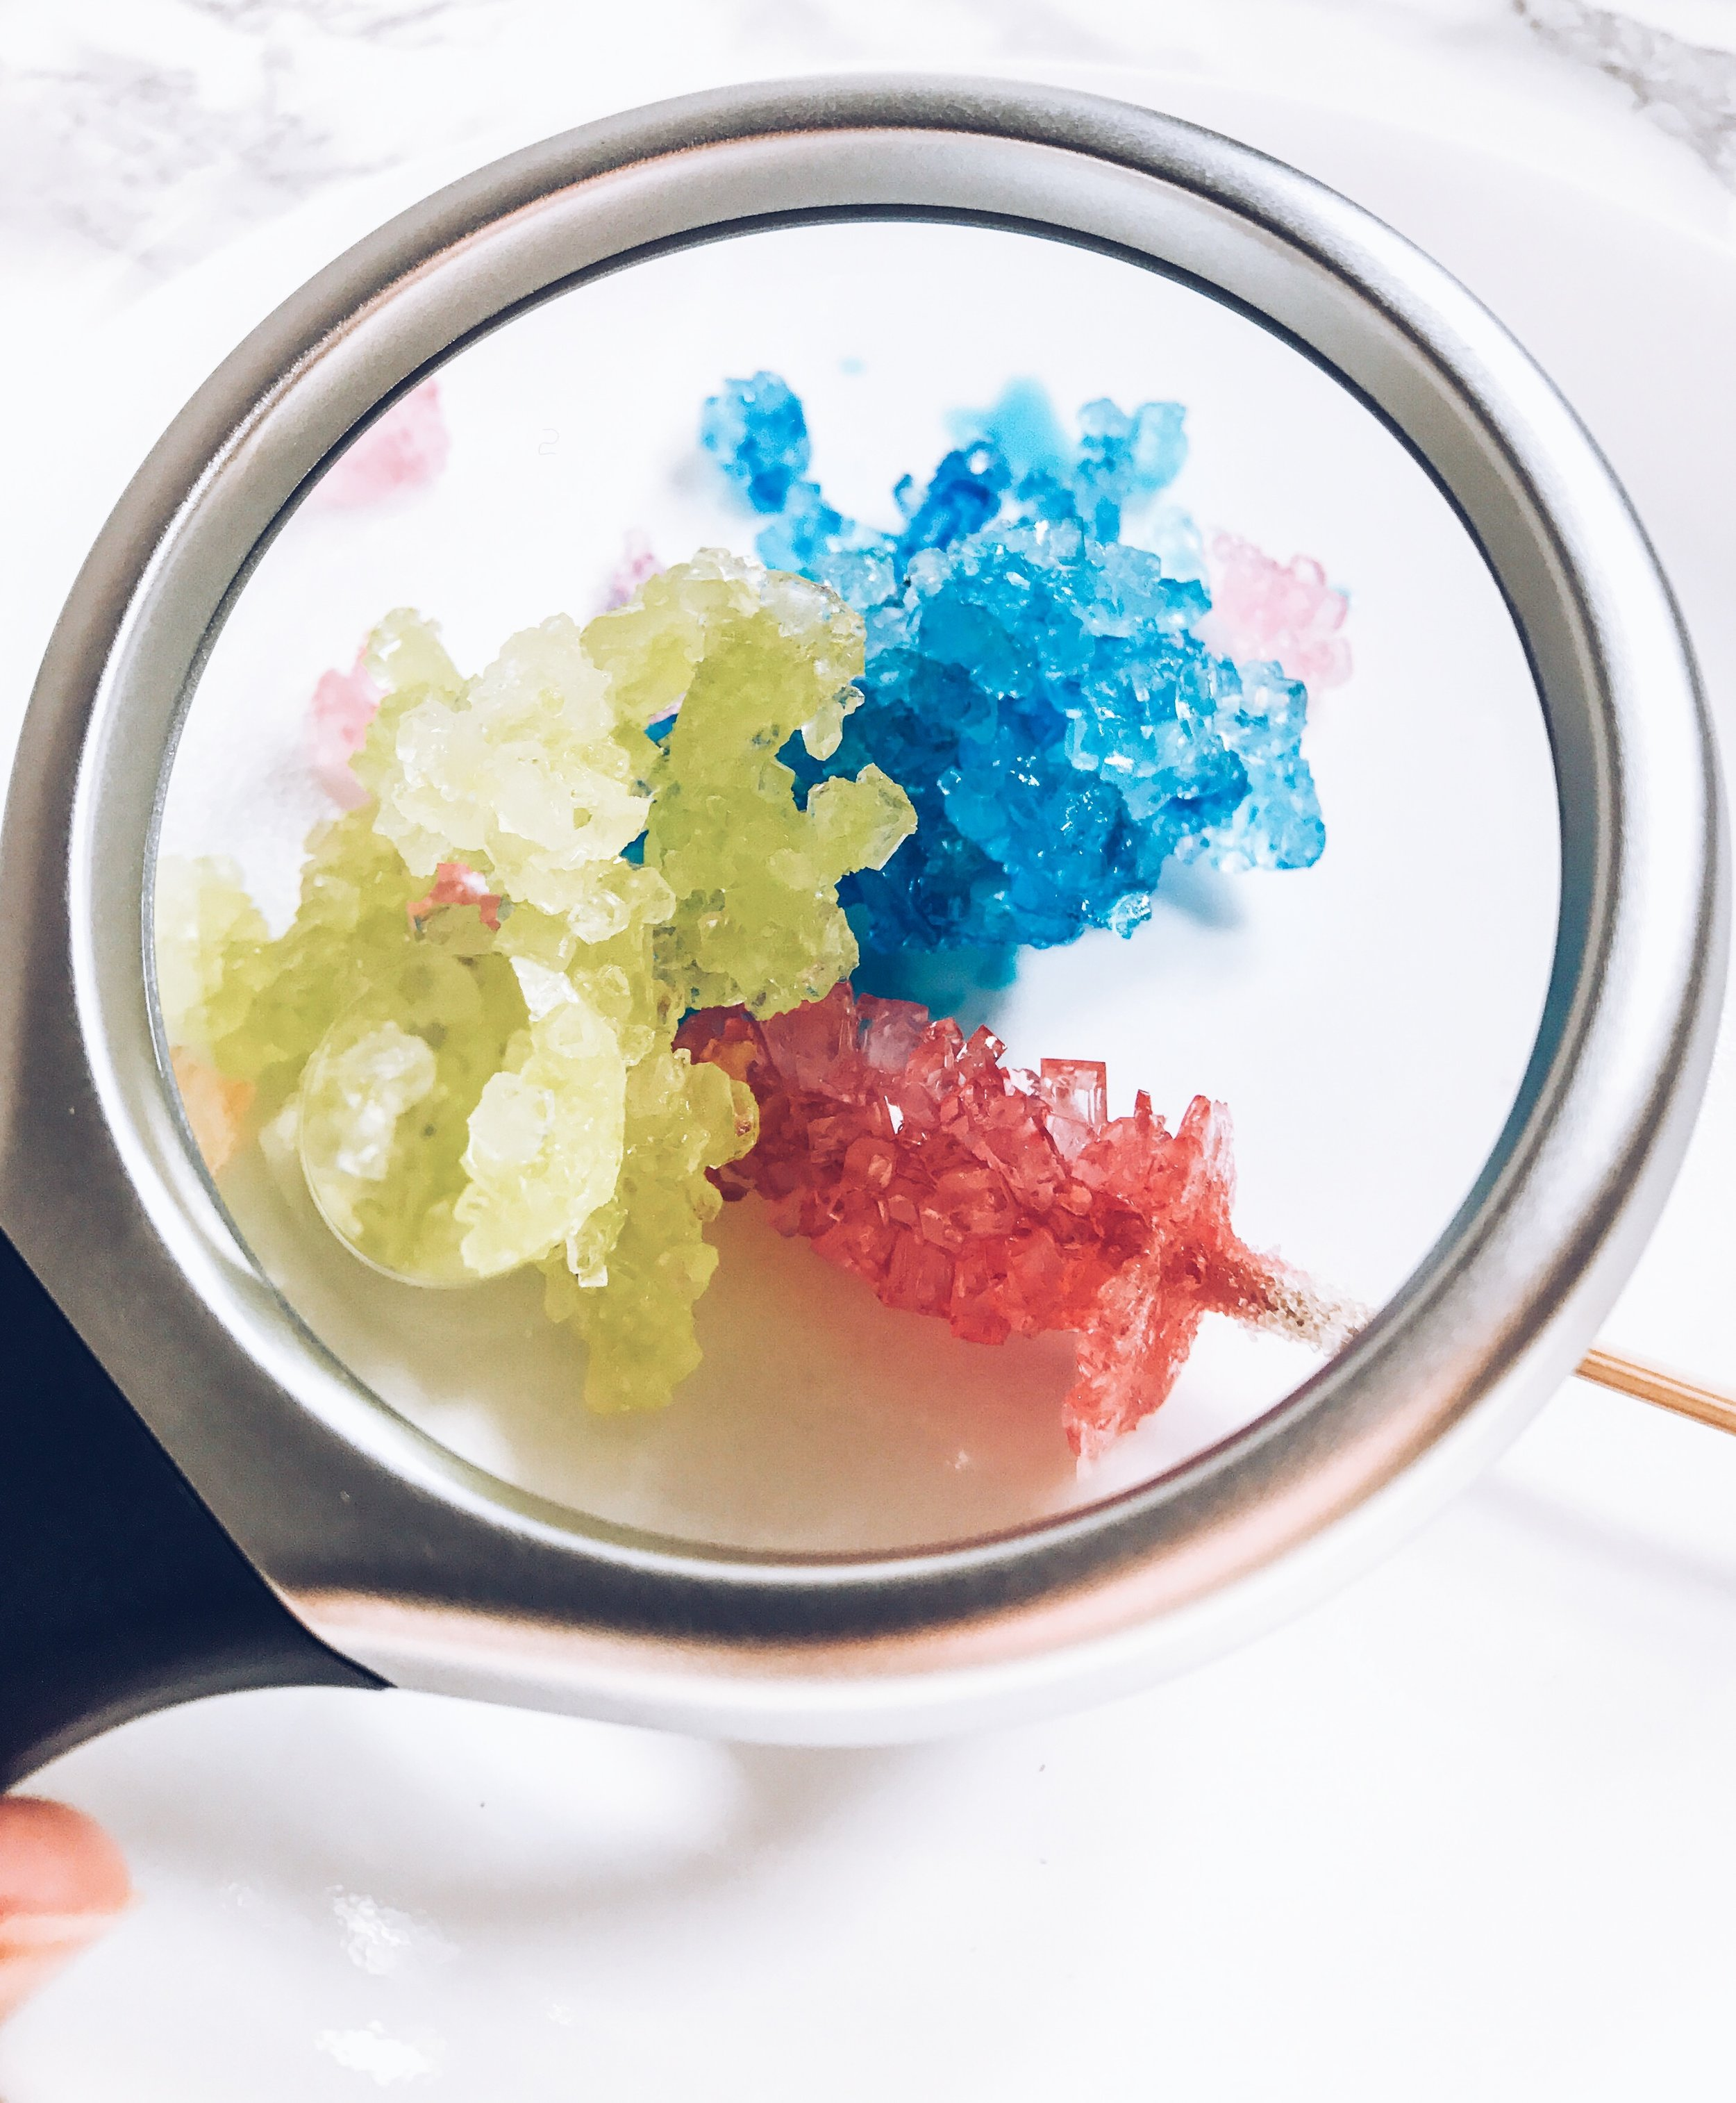 How To Make Rock Candy - All About Crystal Formation